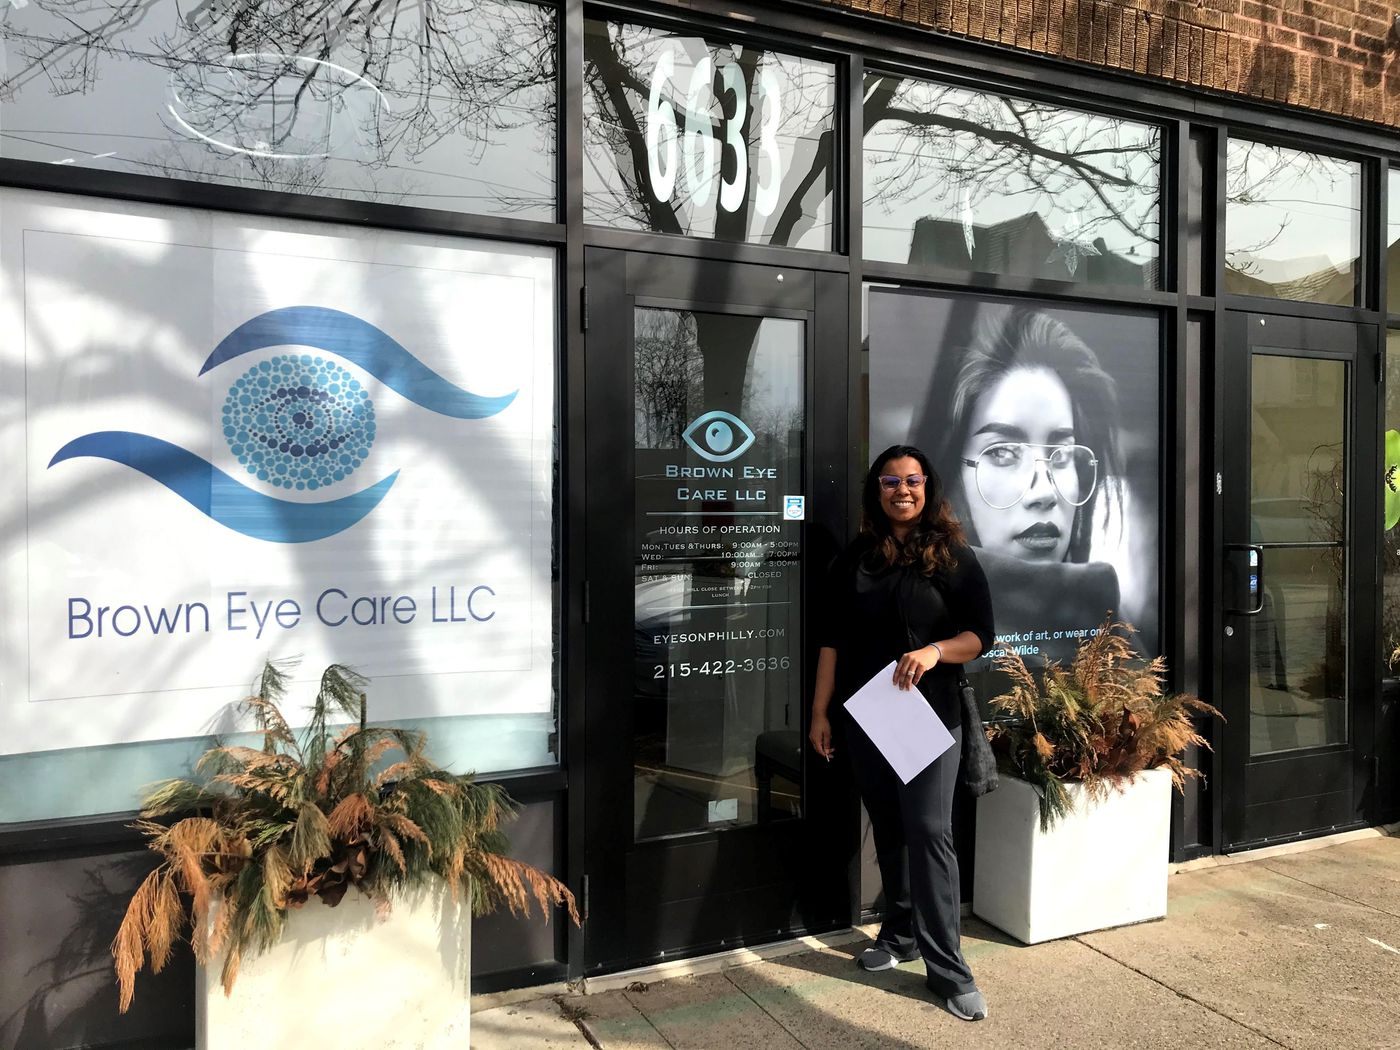 Local Small Businesses Get Second Chance to Grab Emergency Coronavirus Loans